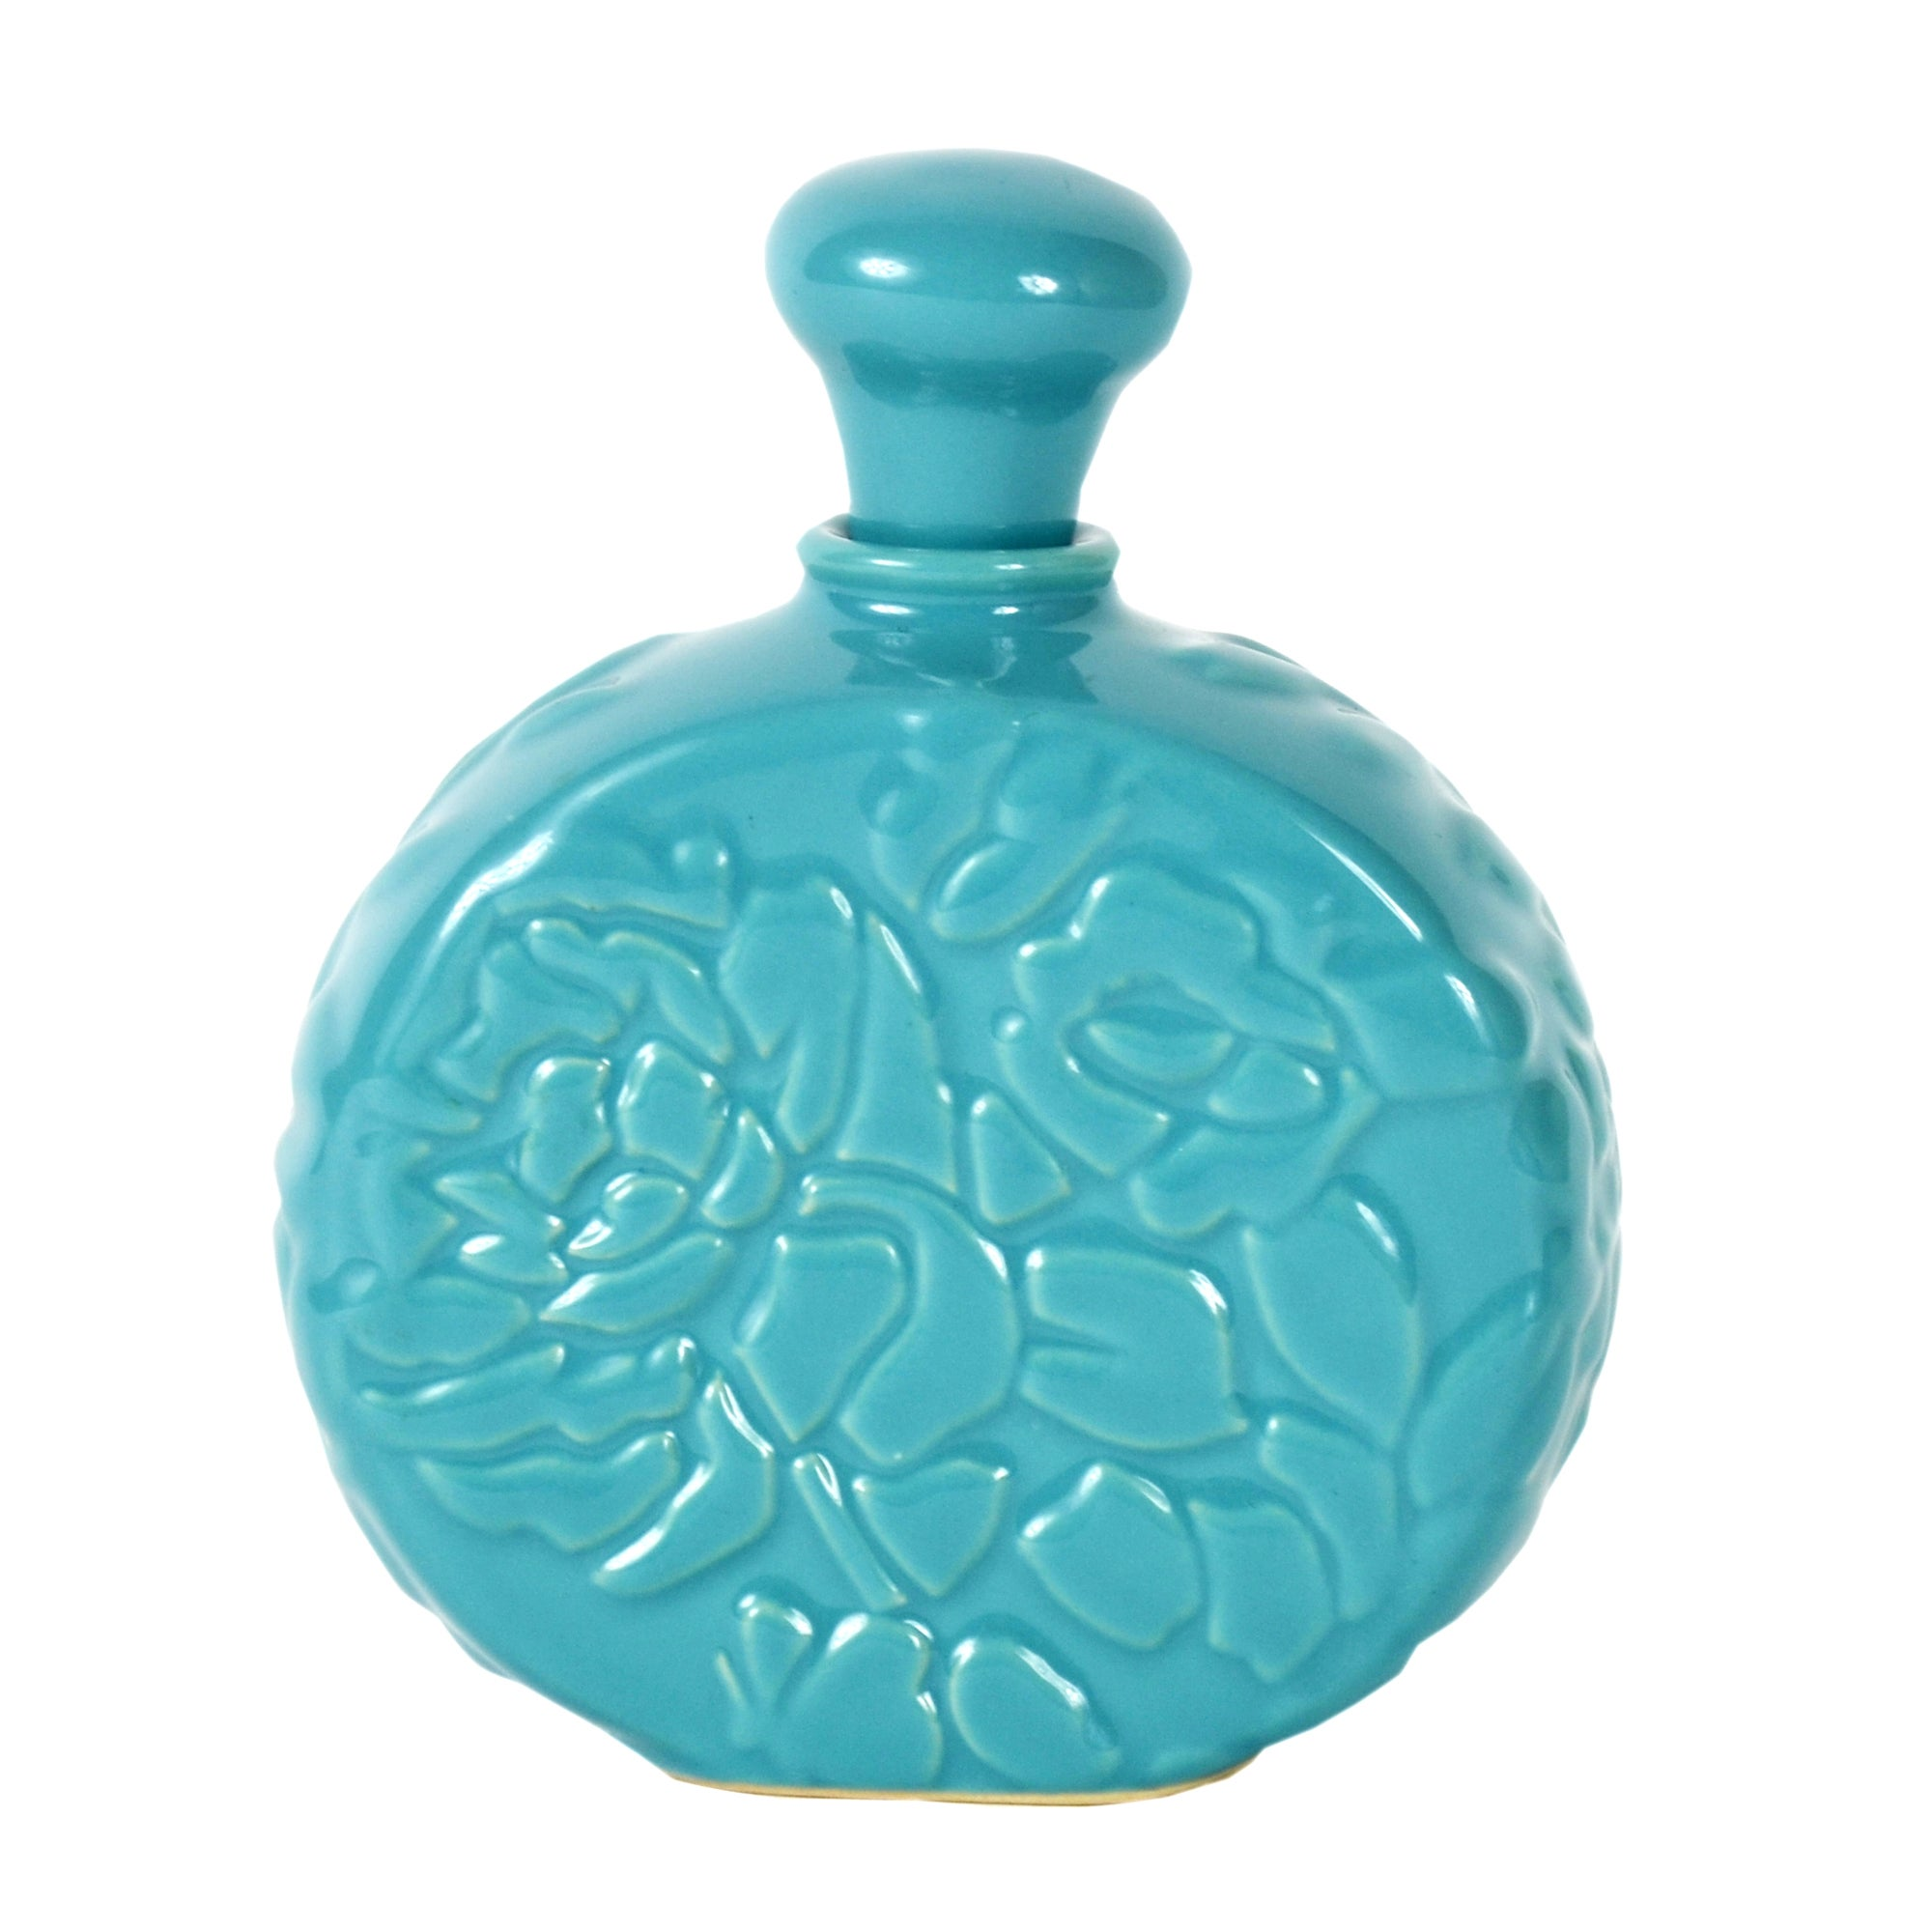 Room in Bloom Collection Embossed Perfume Bottle